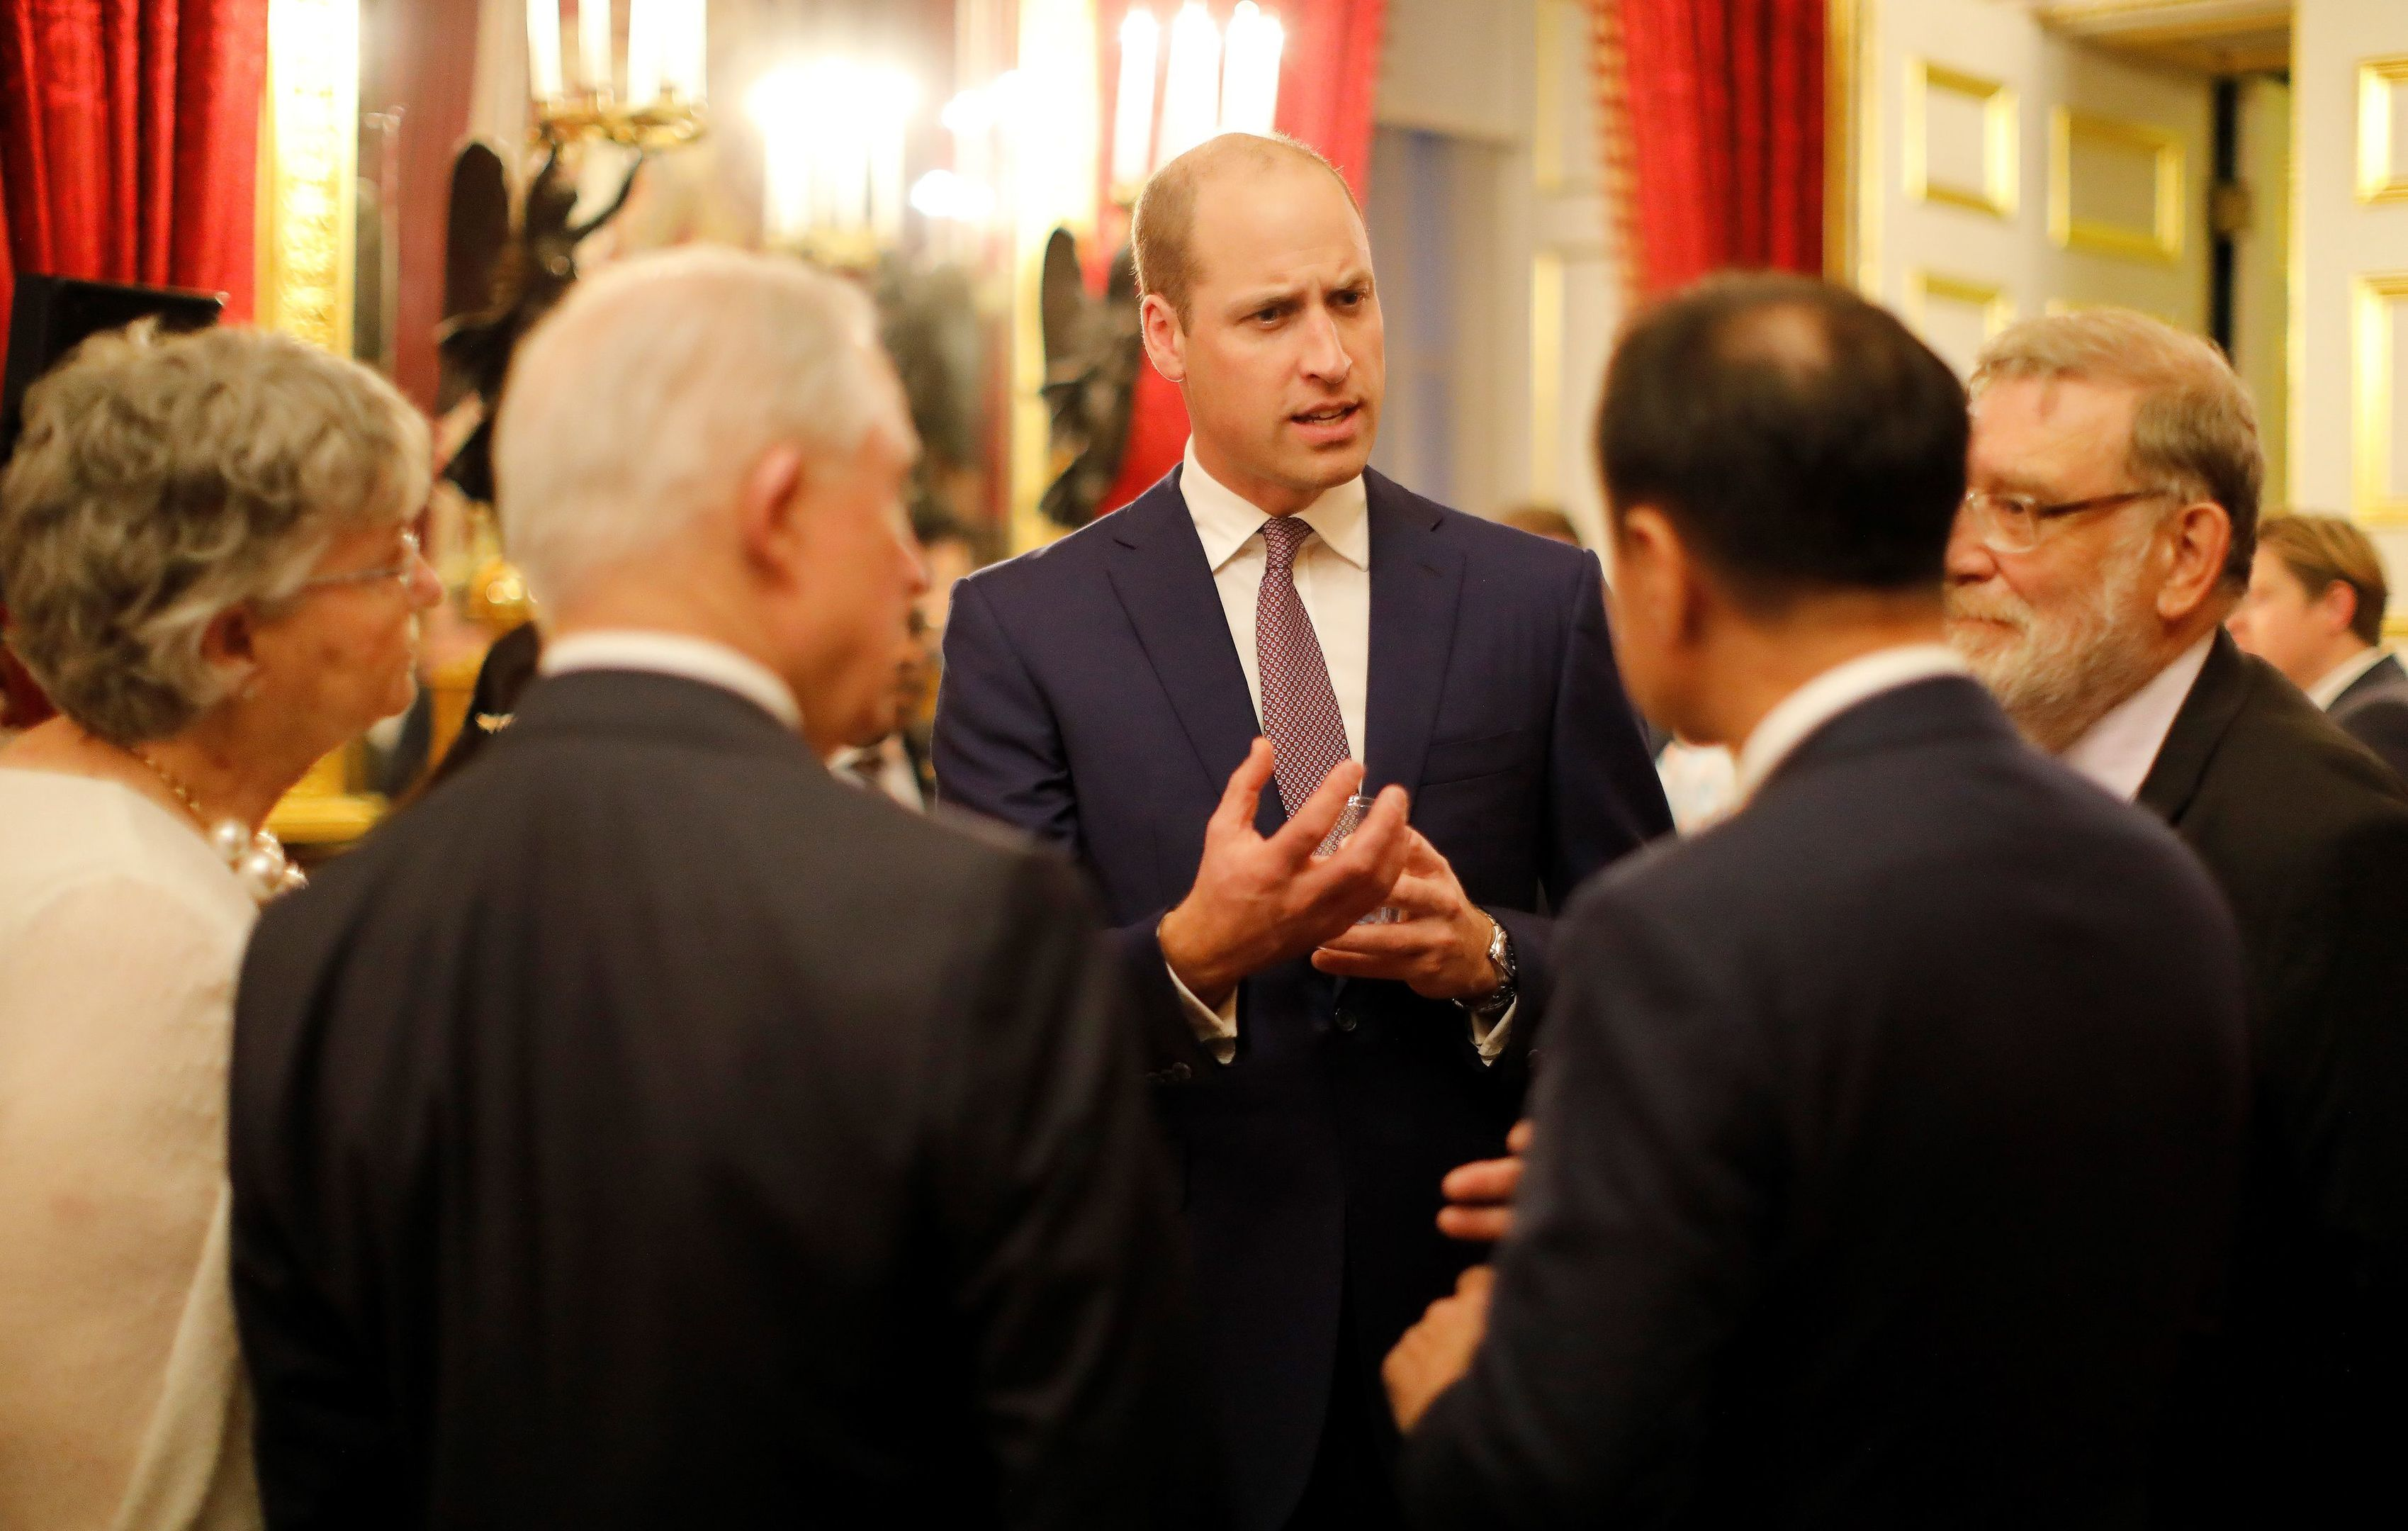 Prince William will learn about UK atomic energy.